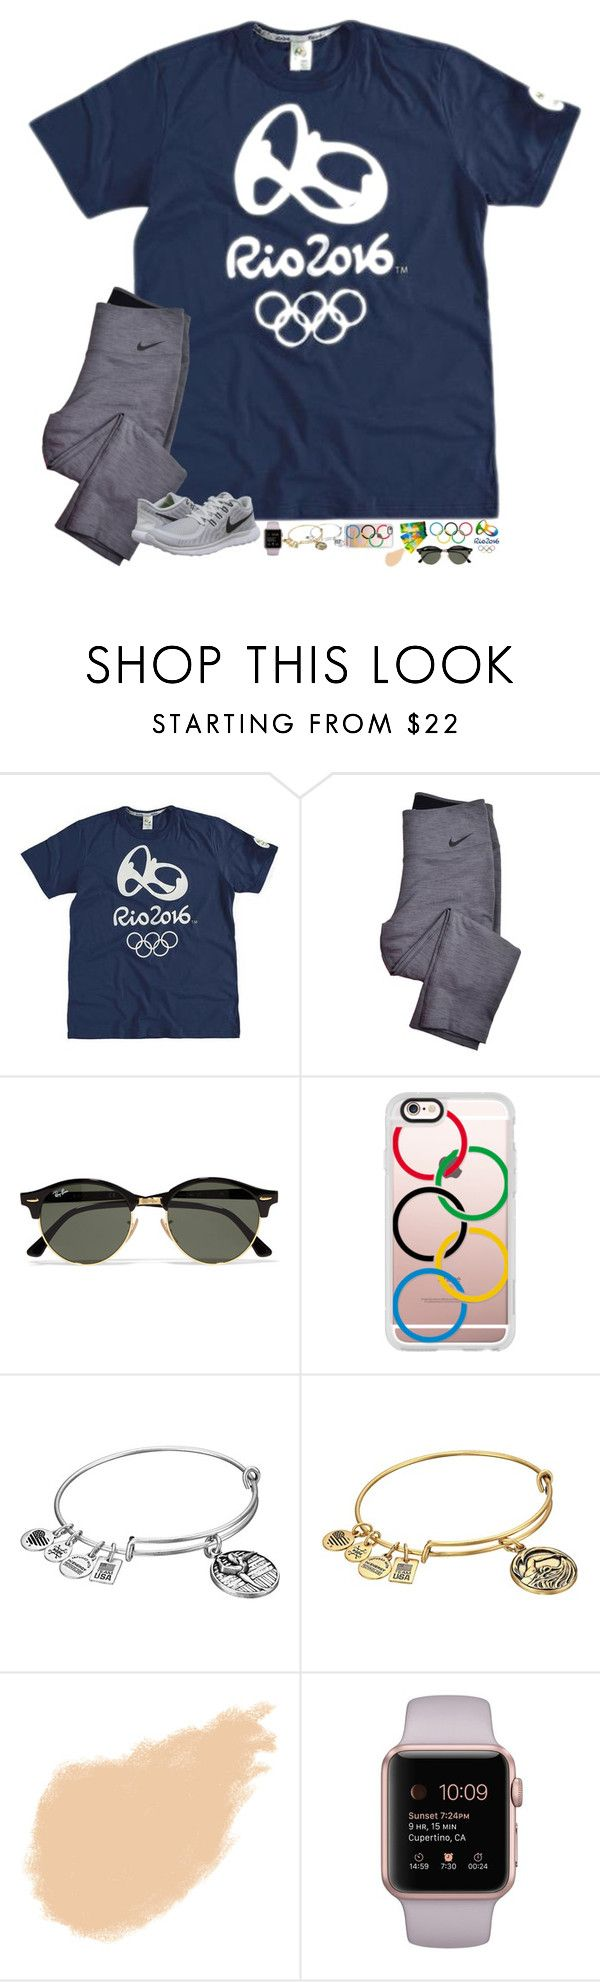 """""""Just watched Michael phelps bring in the gold for his (possibly) last Olympic race. It's so sad """" by hopemarlee ❤ liked on Polyvore featuring NIKE, Ray-Ban, Casetify, Alex and Ani and NARS Cosmetics"""